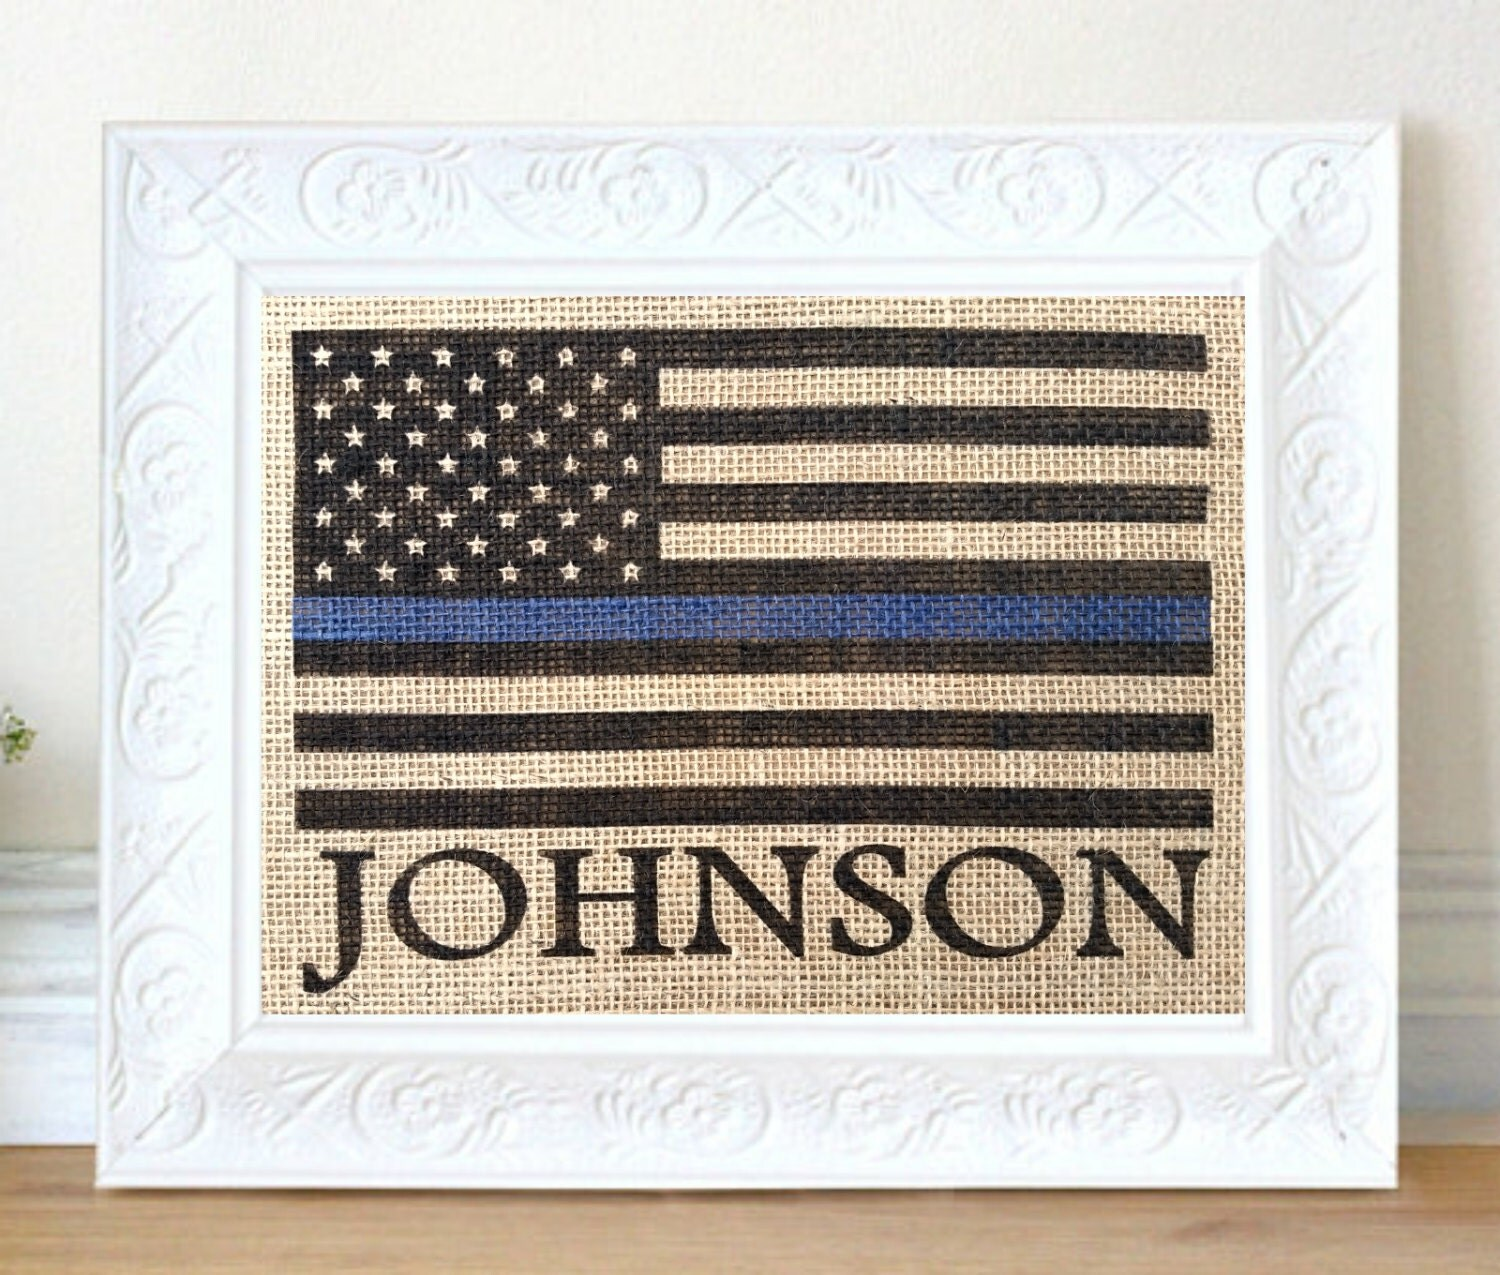 police wedding police wedding rings Thin Blue Line Flag Personalized Police Officer Gift American Flag Stars and Stripes Retirement Gift Policeman Gift Wedding Gift Gift